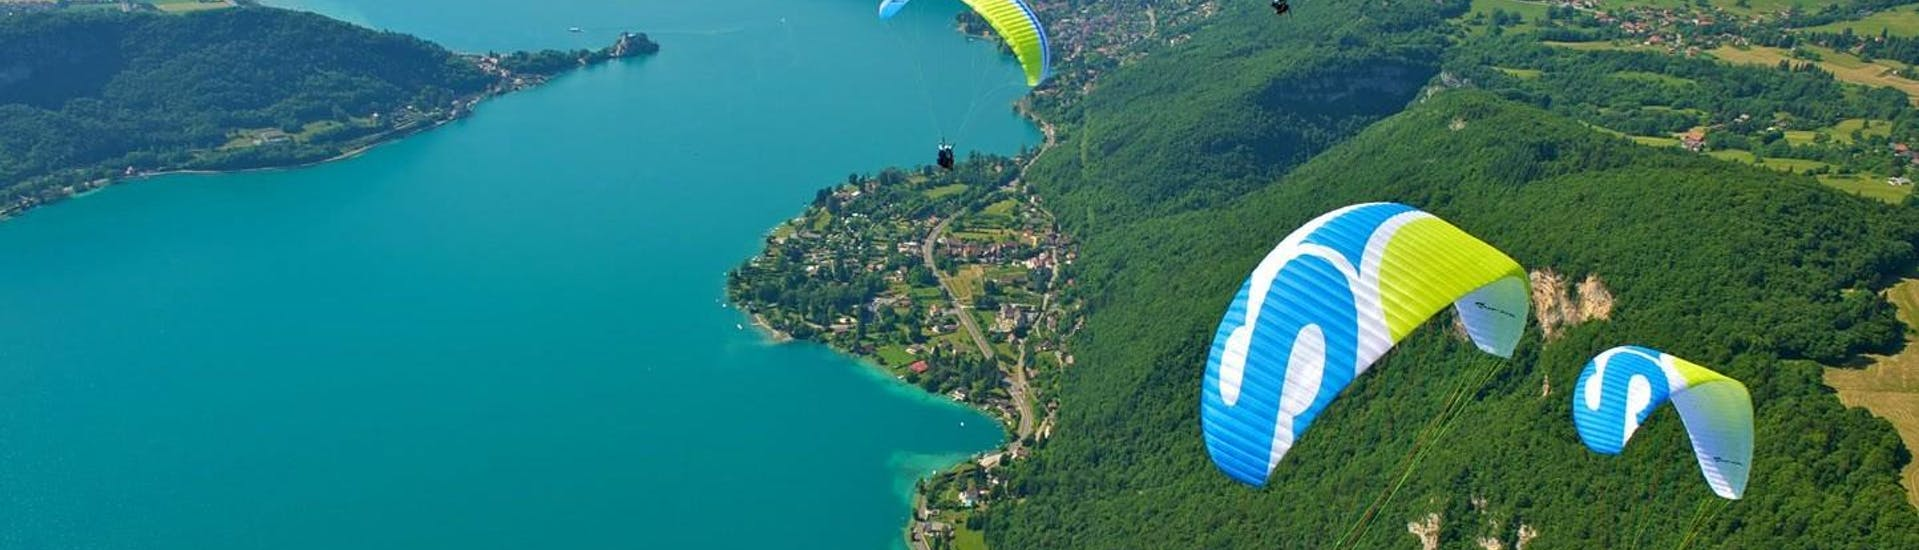 A family is enjoying their Paragliding flight with Flyeo.